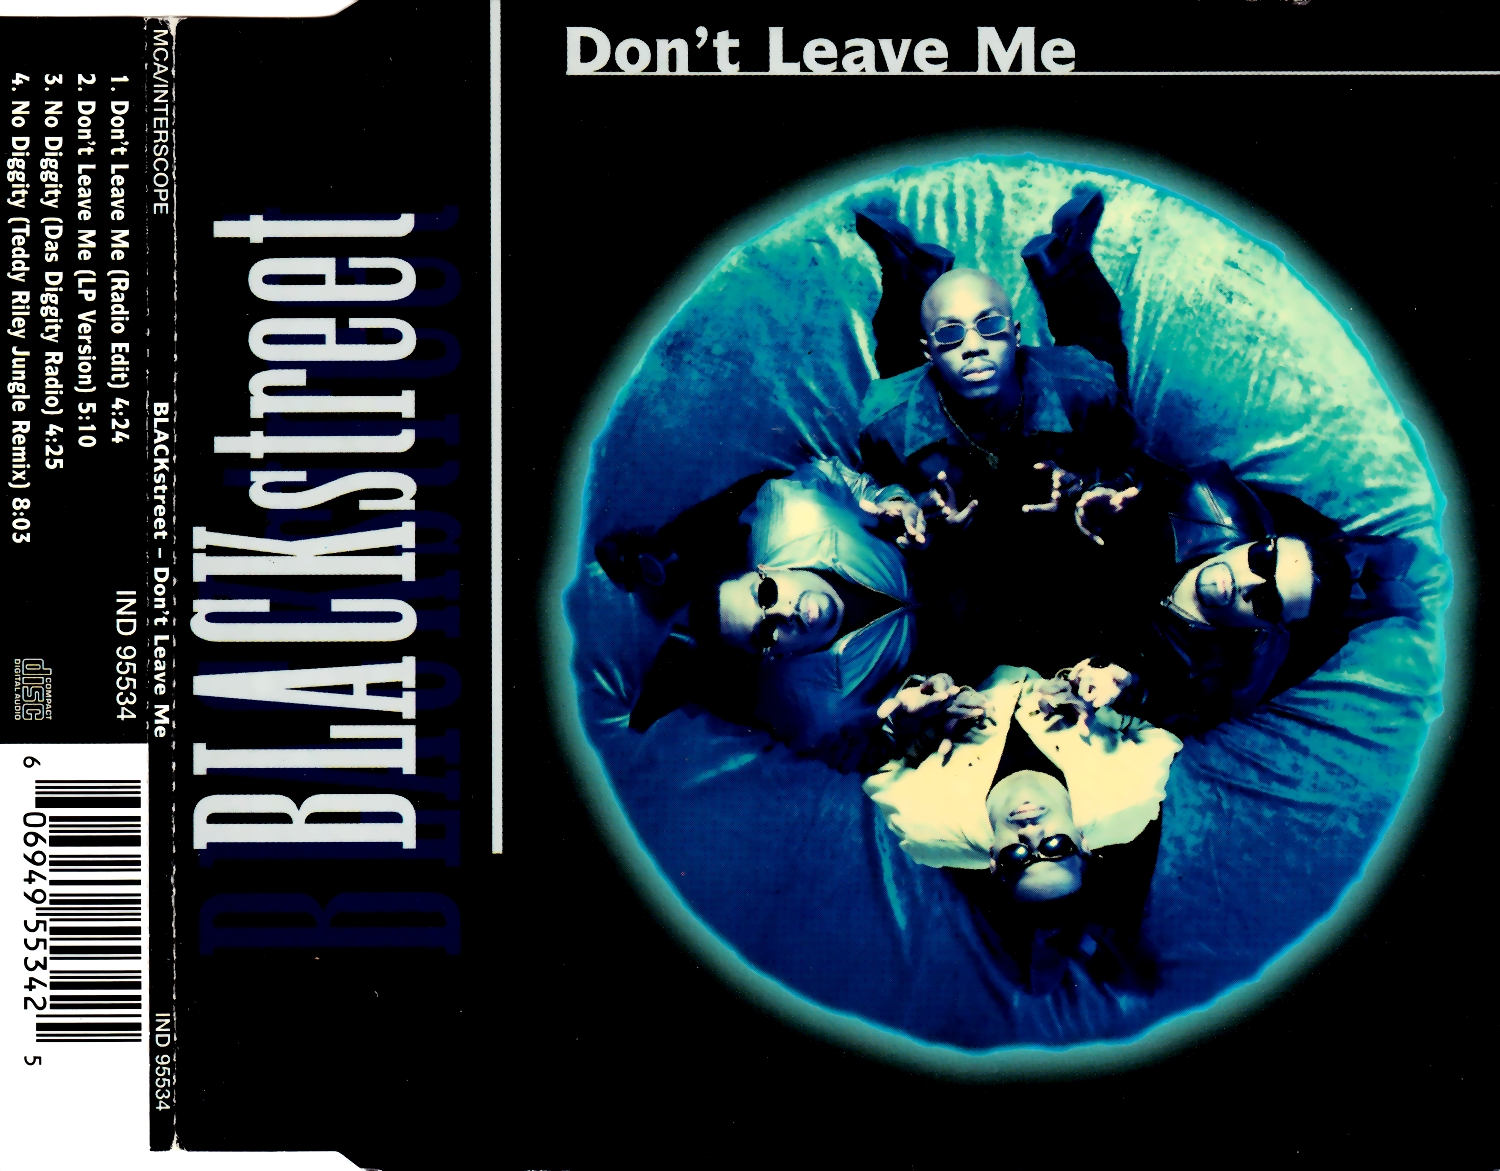 Blackstreet - Don't Leave Me